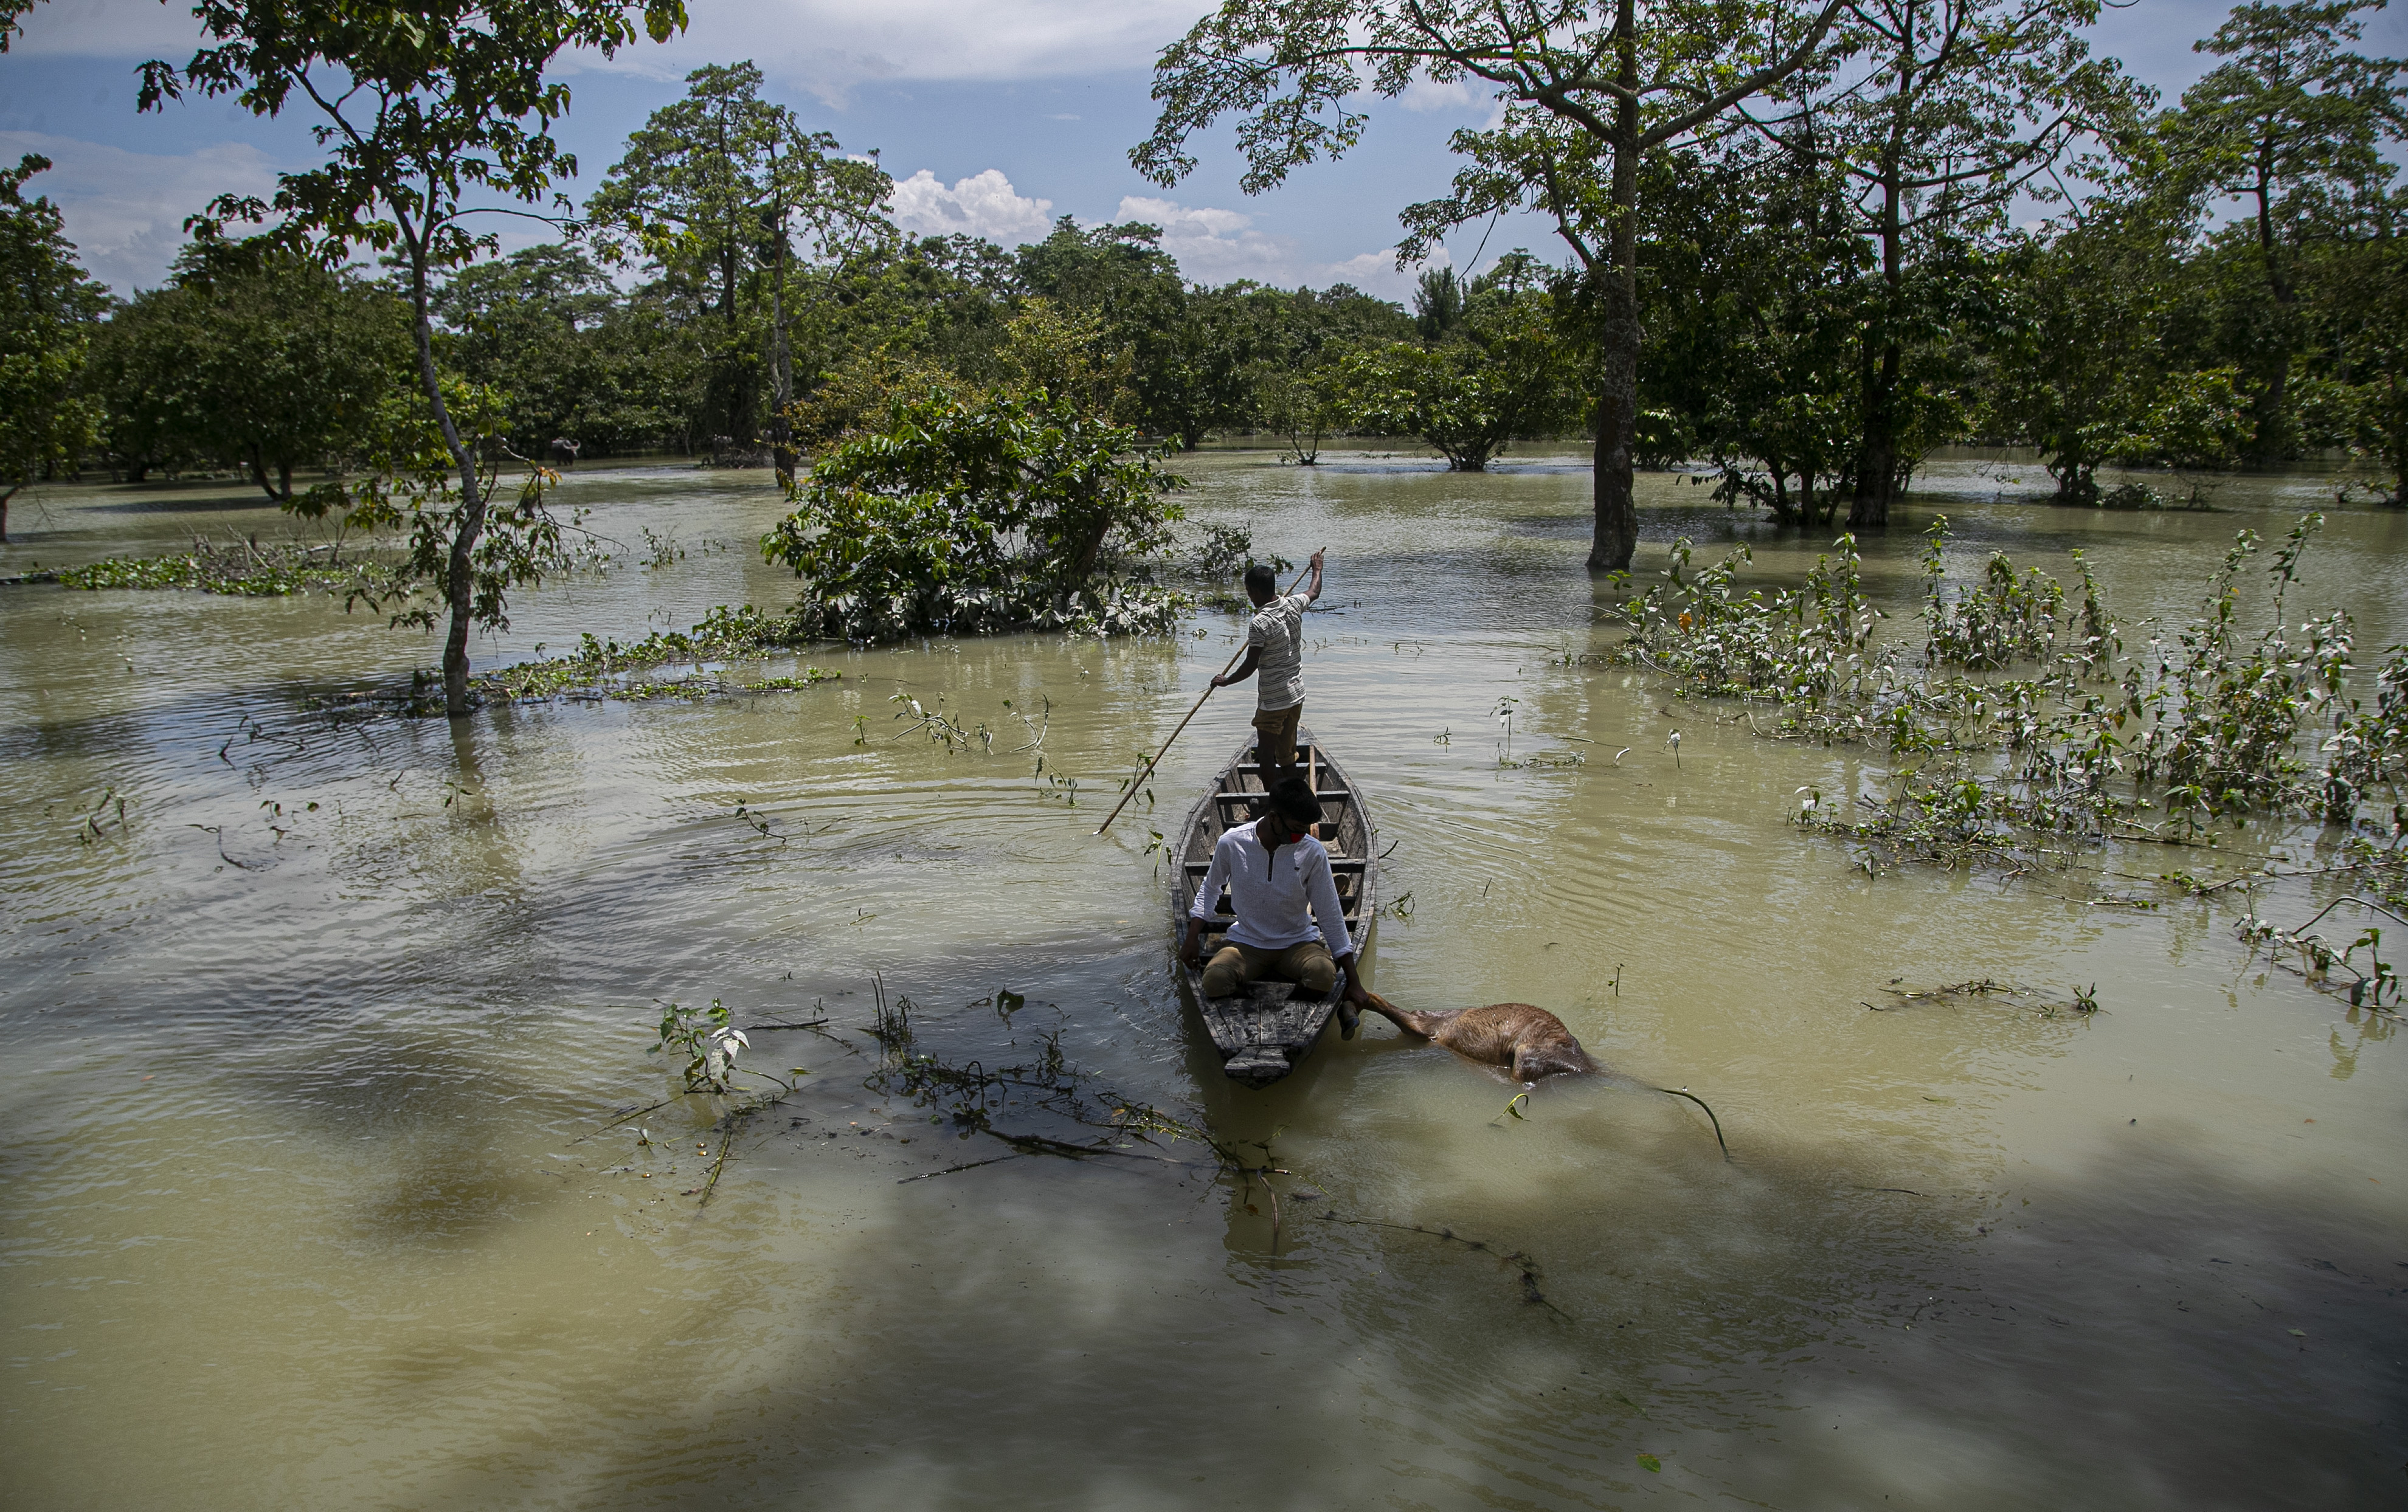 An Indian forest guard on takes away the carcass of a wild buffalo calf through flood water at the Pobitora wildlife sanctuary in Pobitora, Morigaon district, Assam, India, on July 16, 2020.